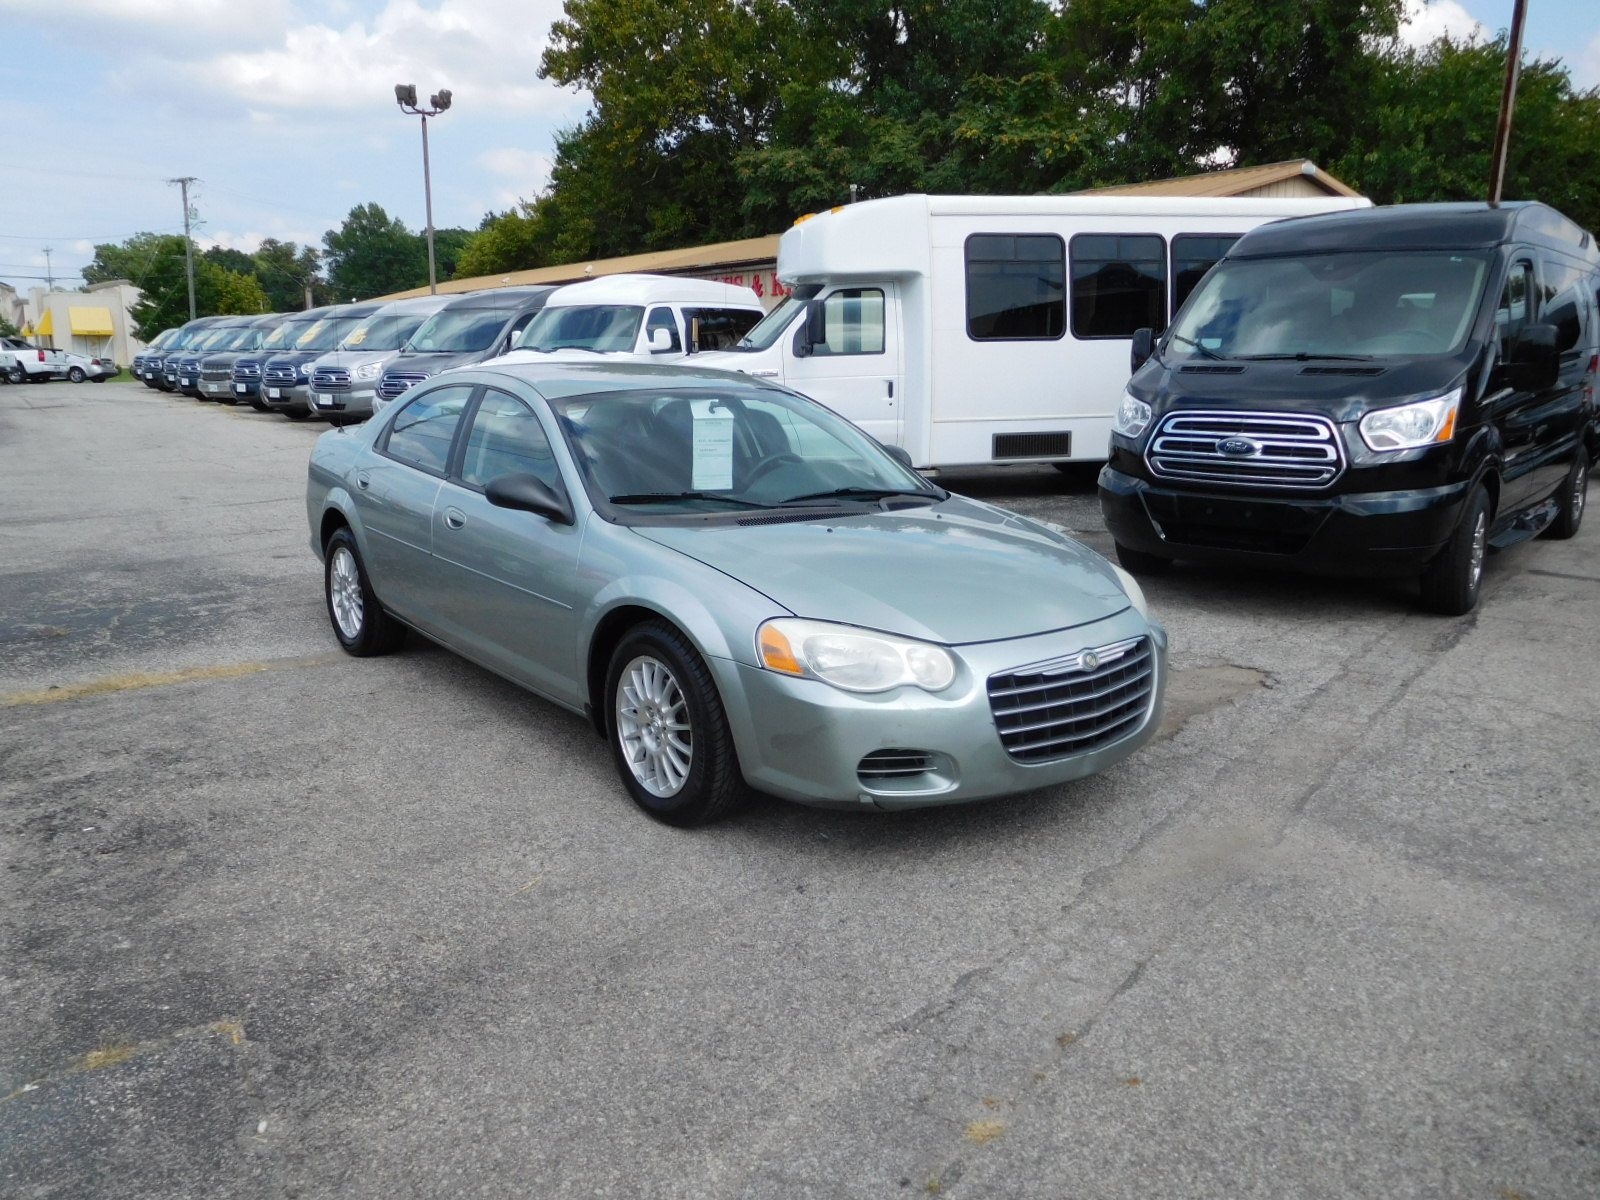 05 CHRYSLER SEBRING